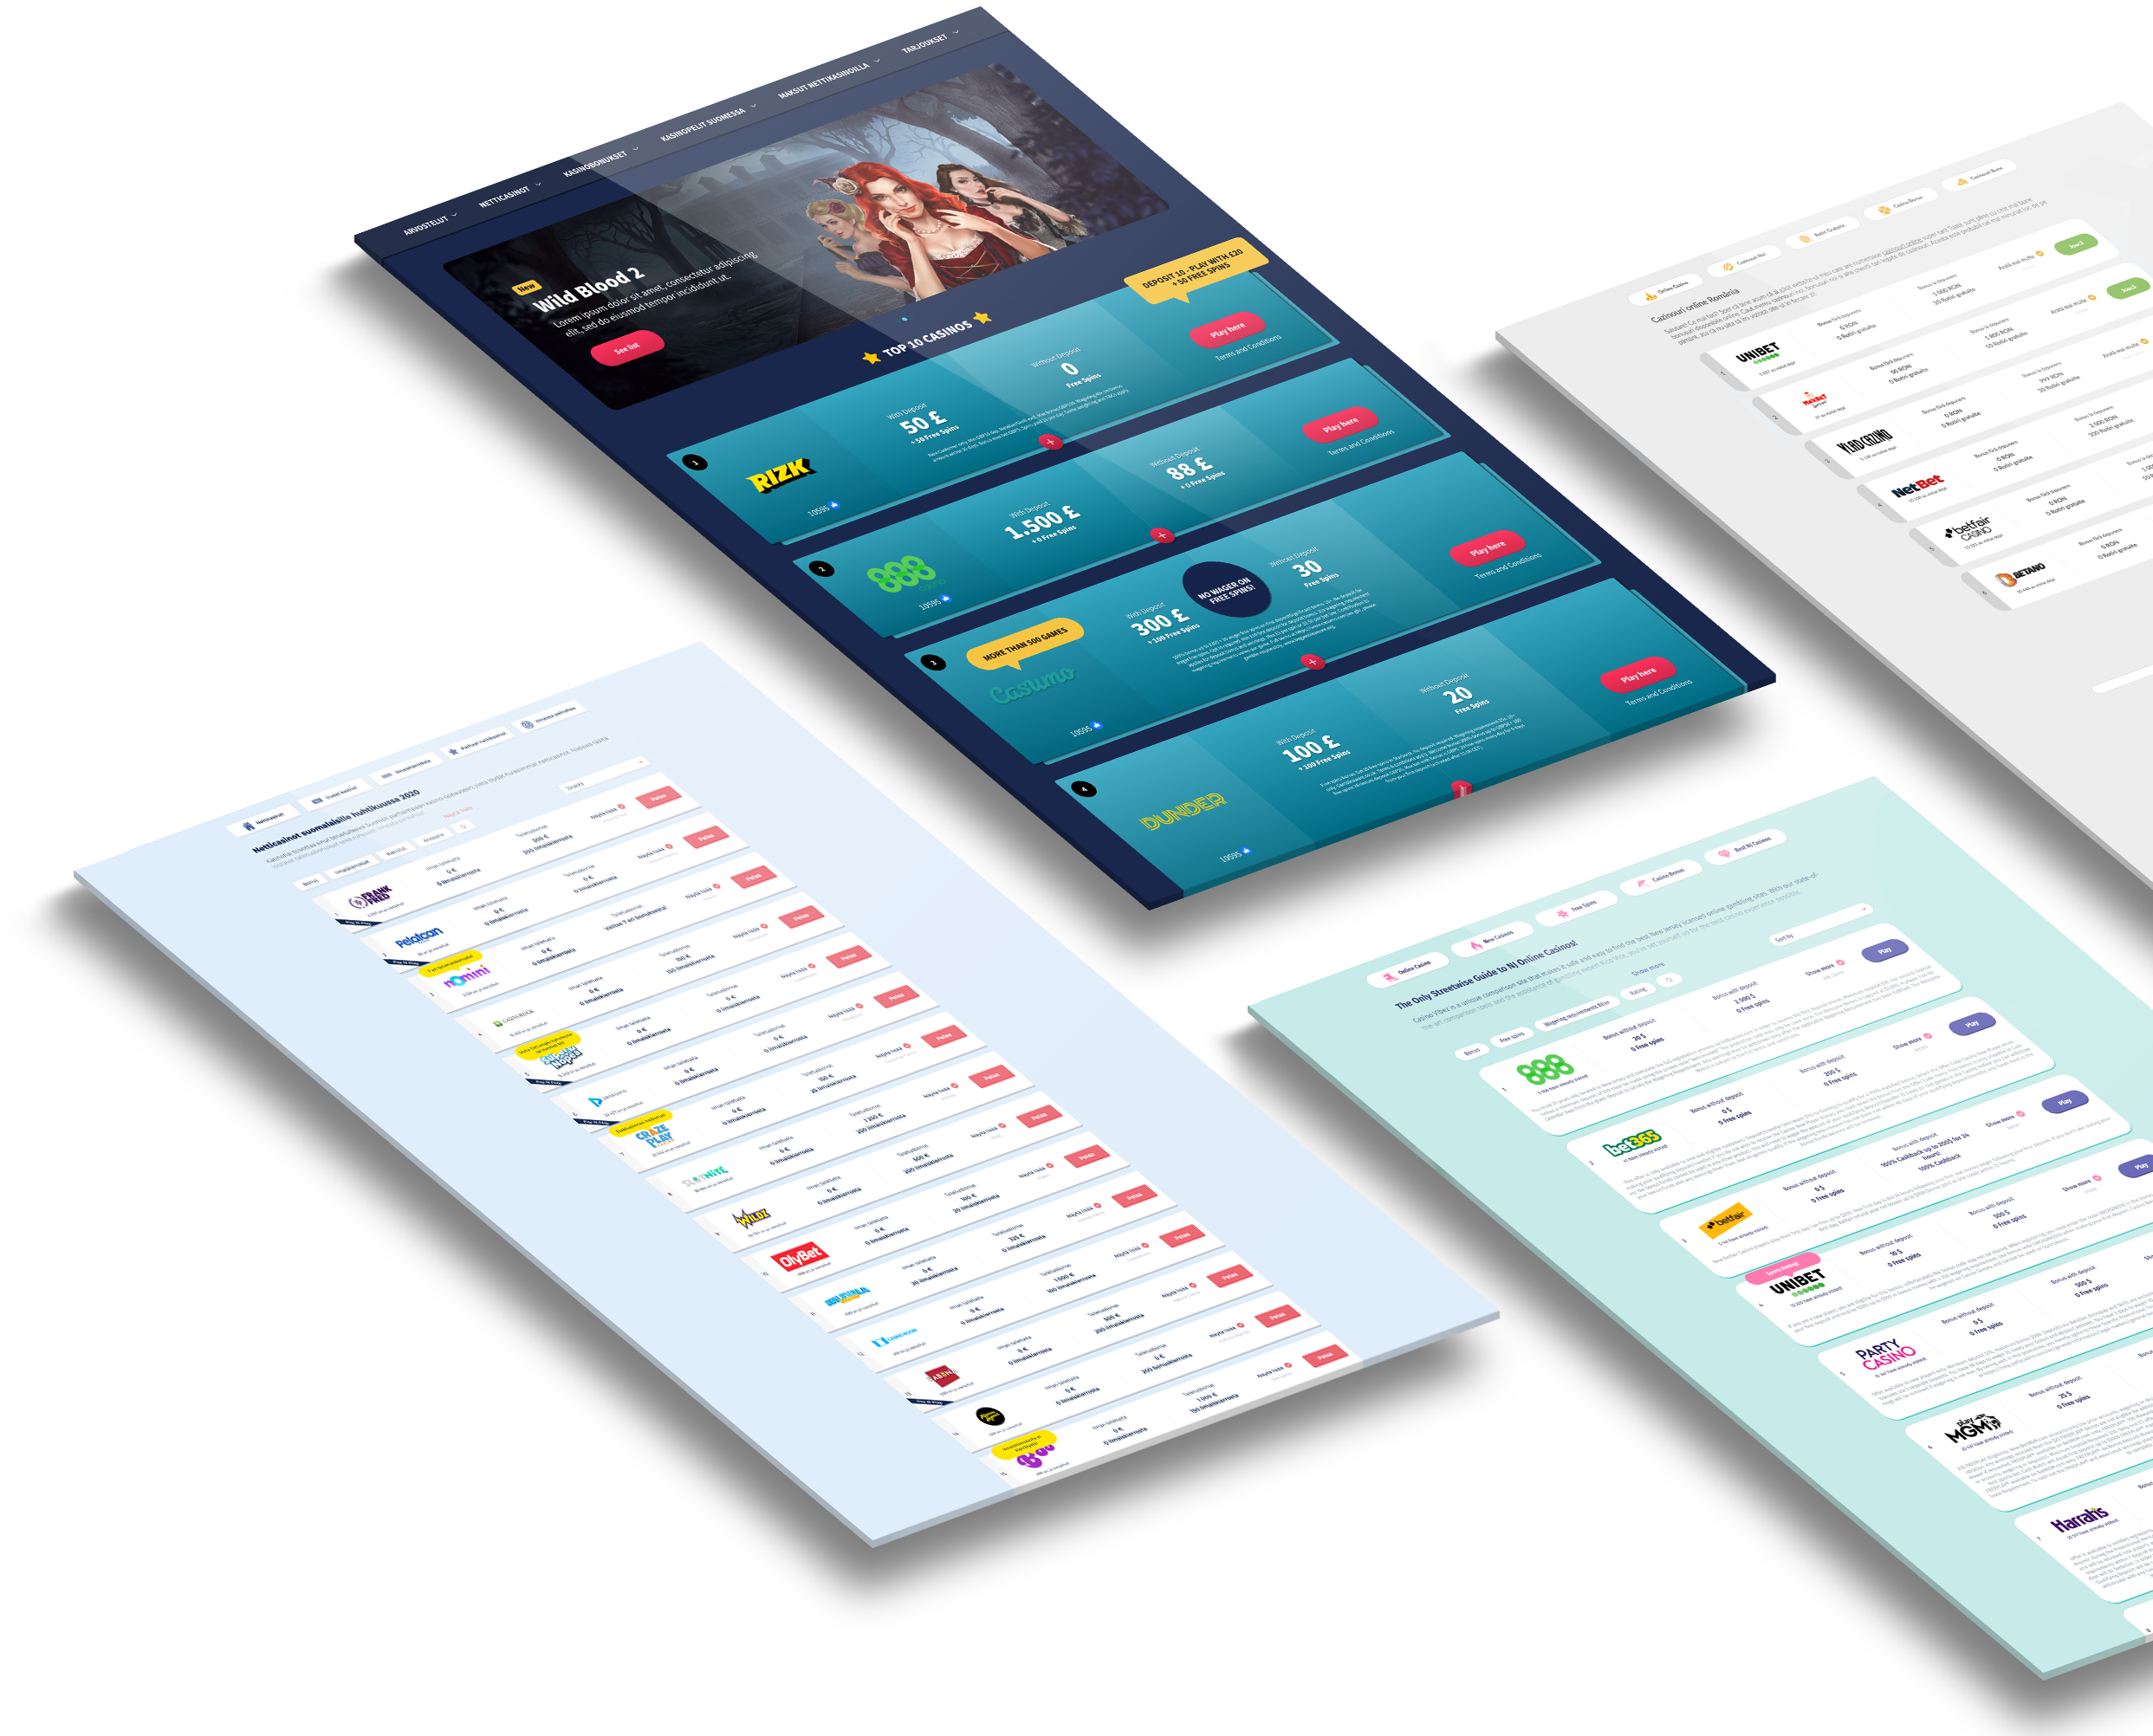 Overview of our casinoguide websies